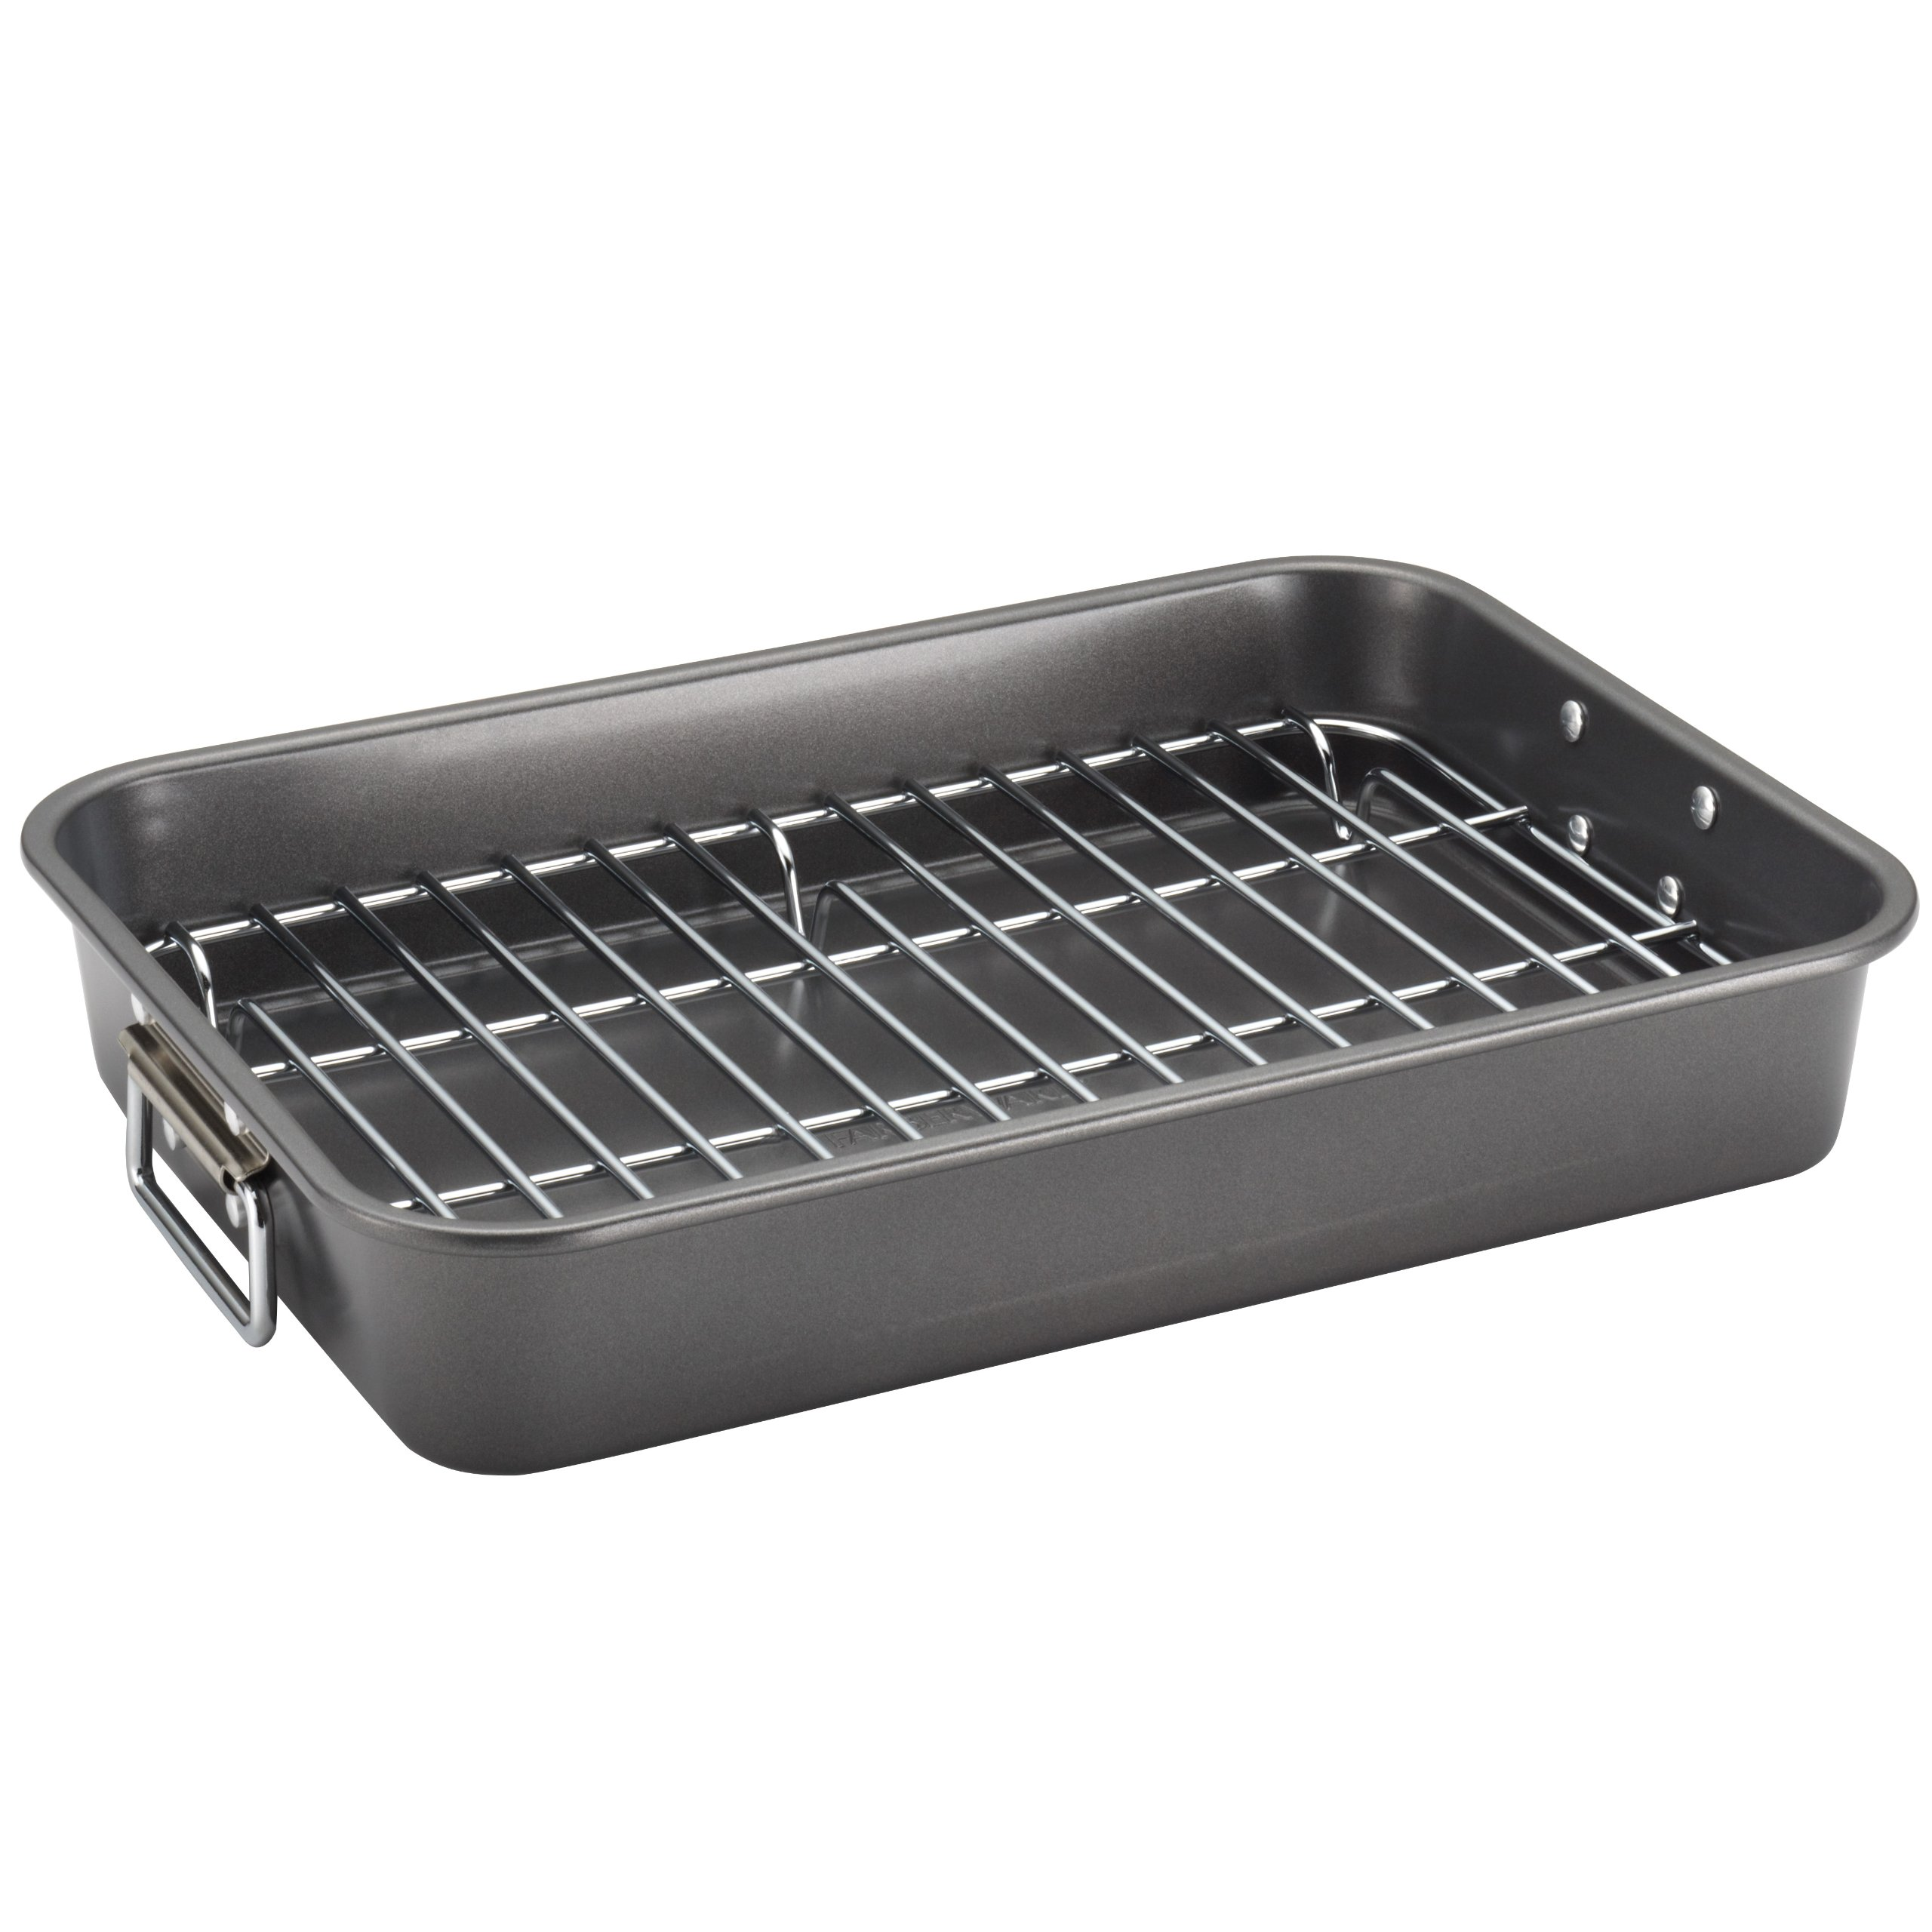 Farberware Nonstick Bakeware 11-Inch x 15-Inch Roaster with Flat Rack, Gray by Farberware